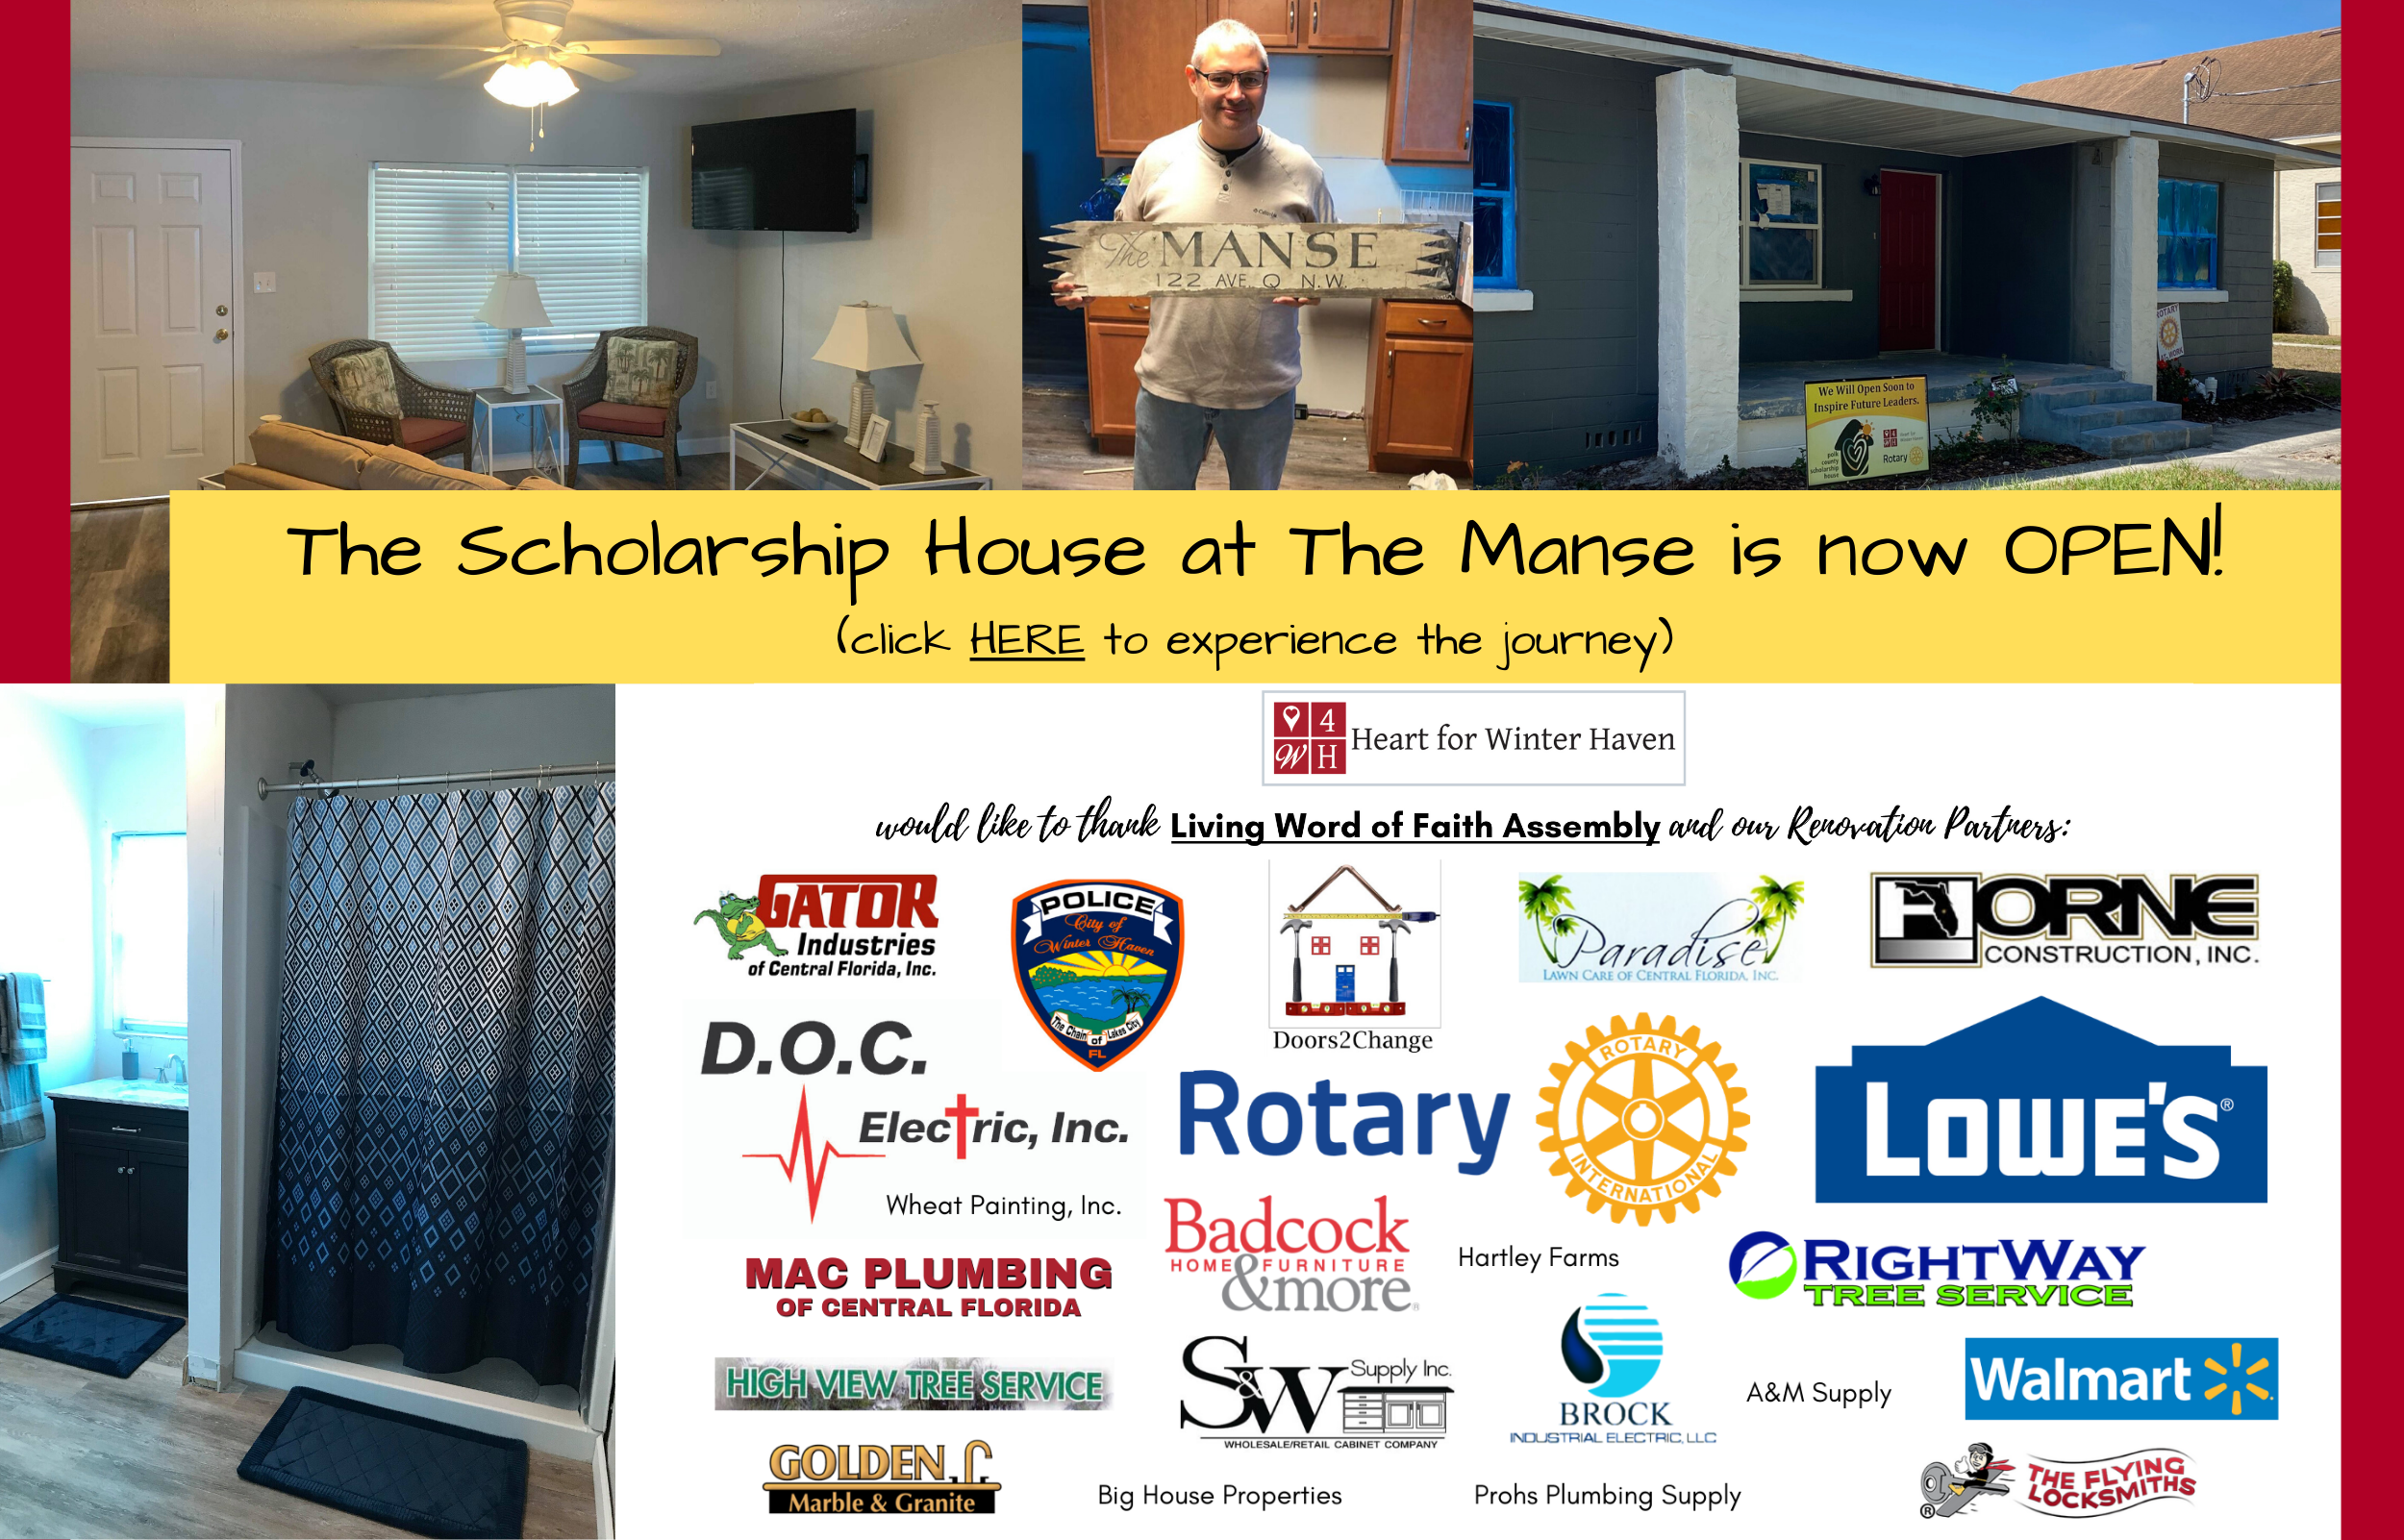 The Scholarship House is now OPEN!